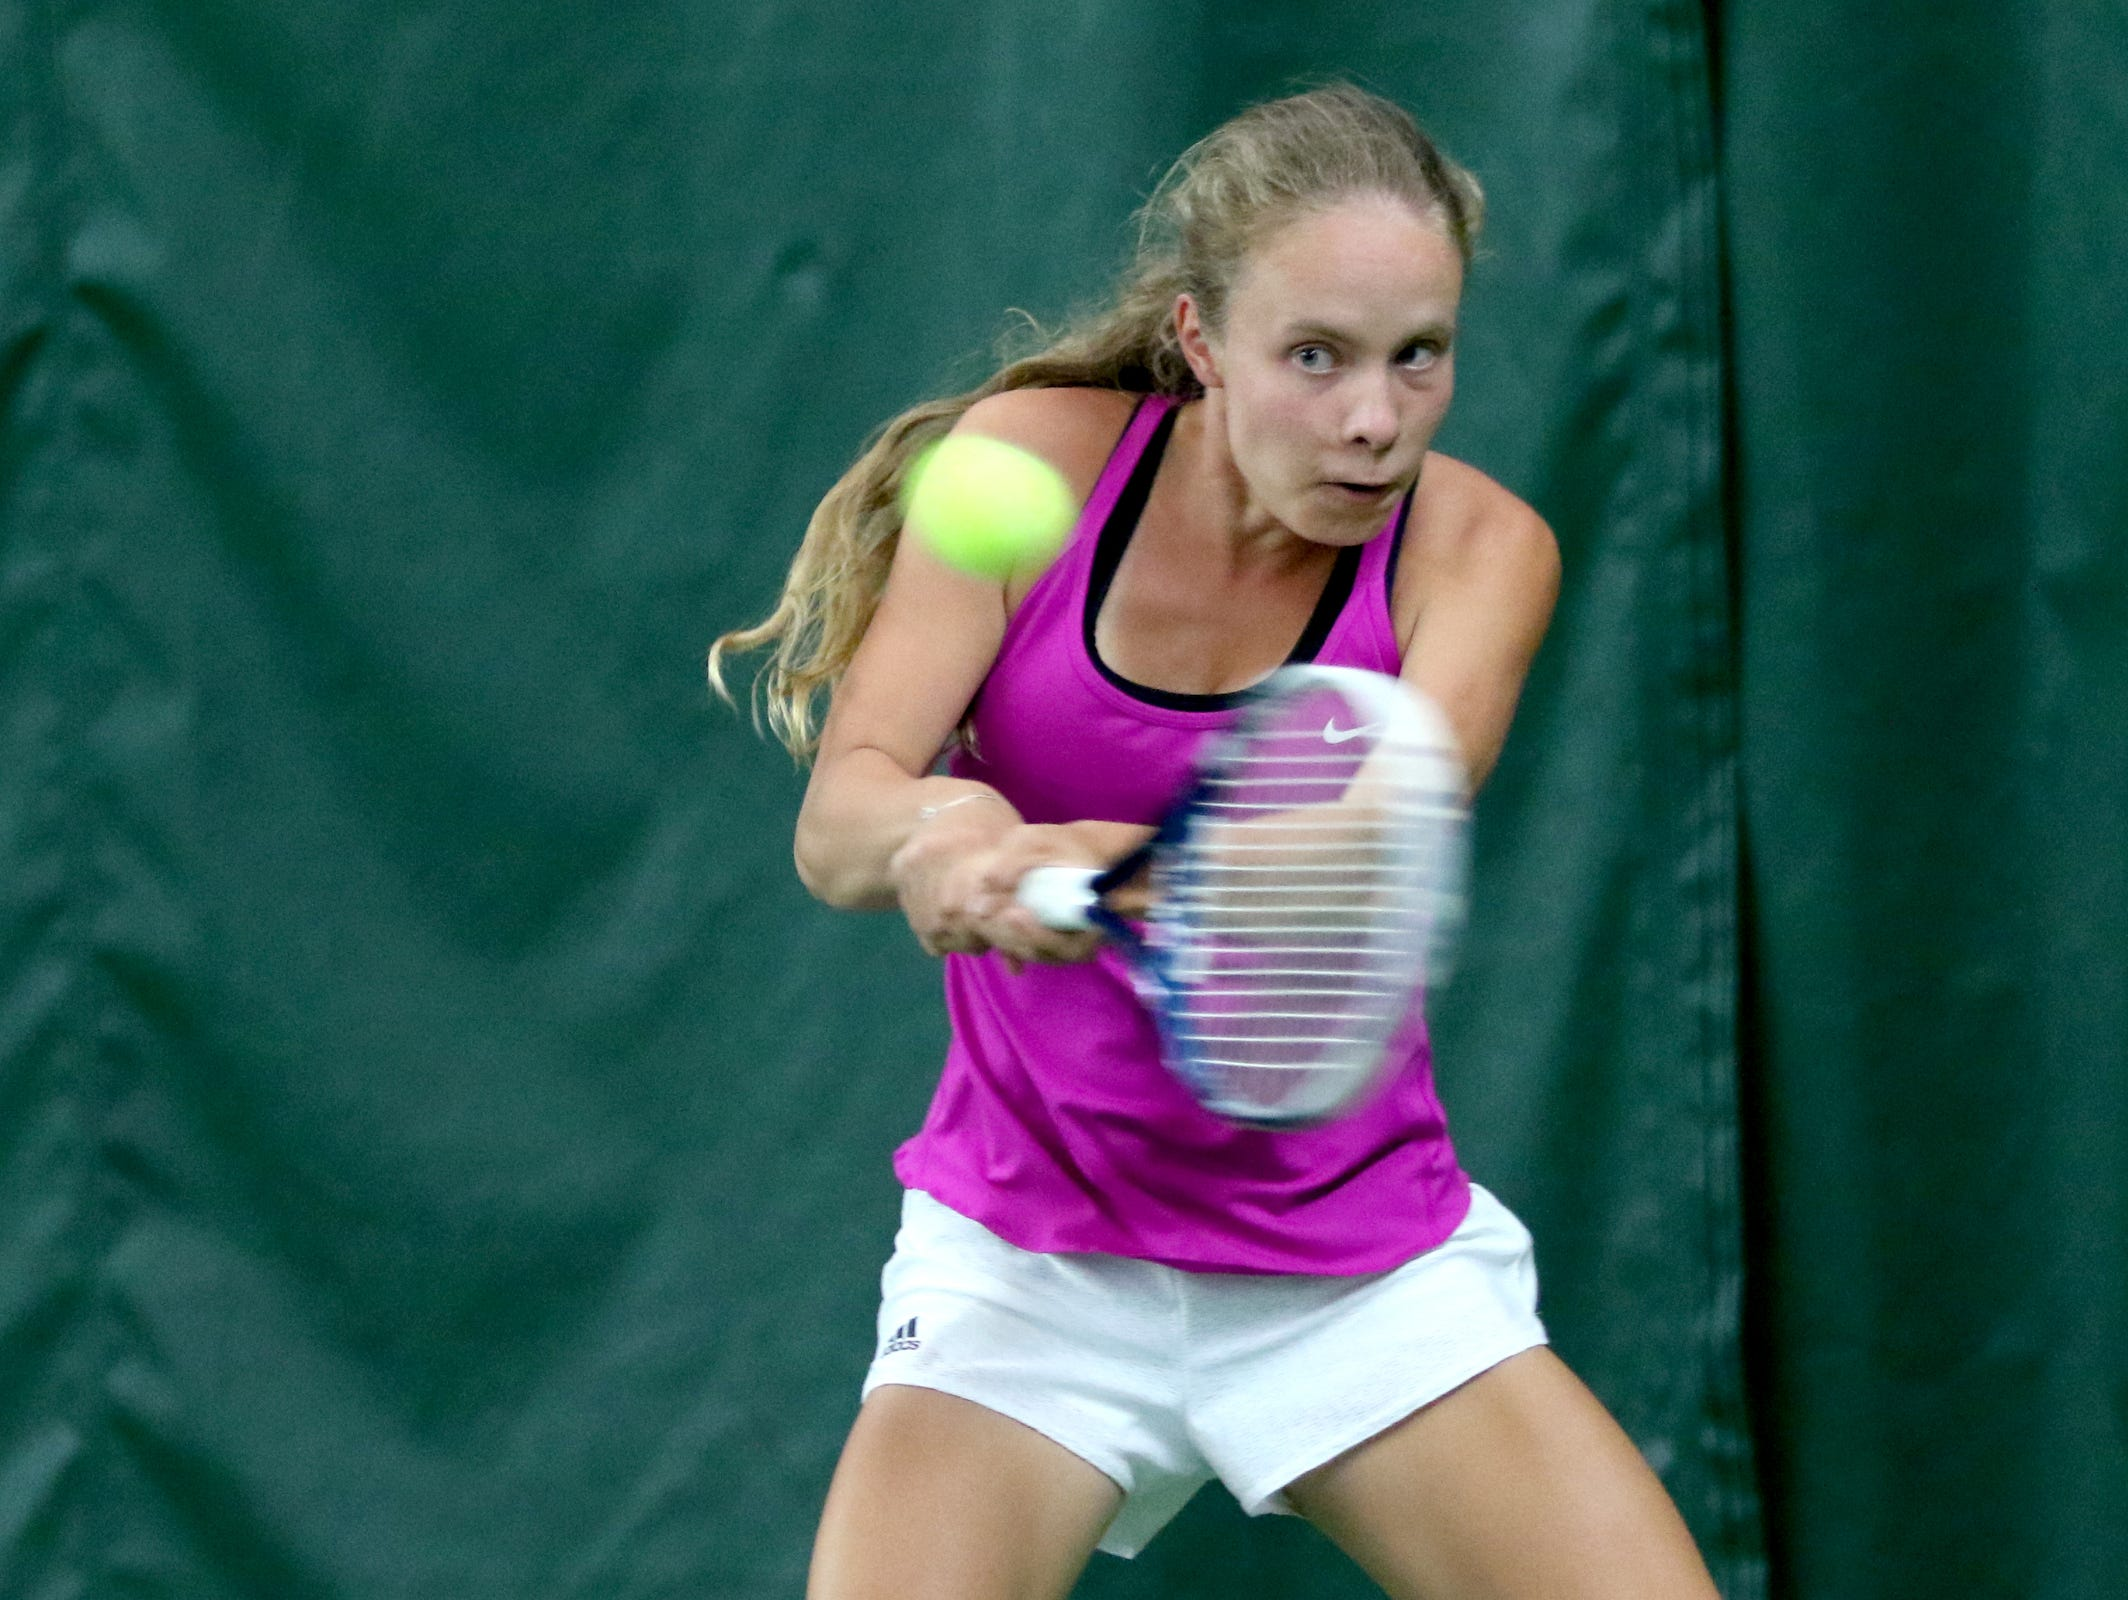 West Salem's Anya Gerasimov competes in the girl's singles third place match at the Greater Valley Conference district meet at the Salem Tennis and Swim Club on Saturday, May 14, 2016.